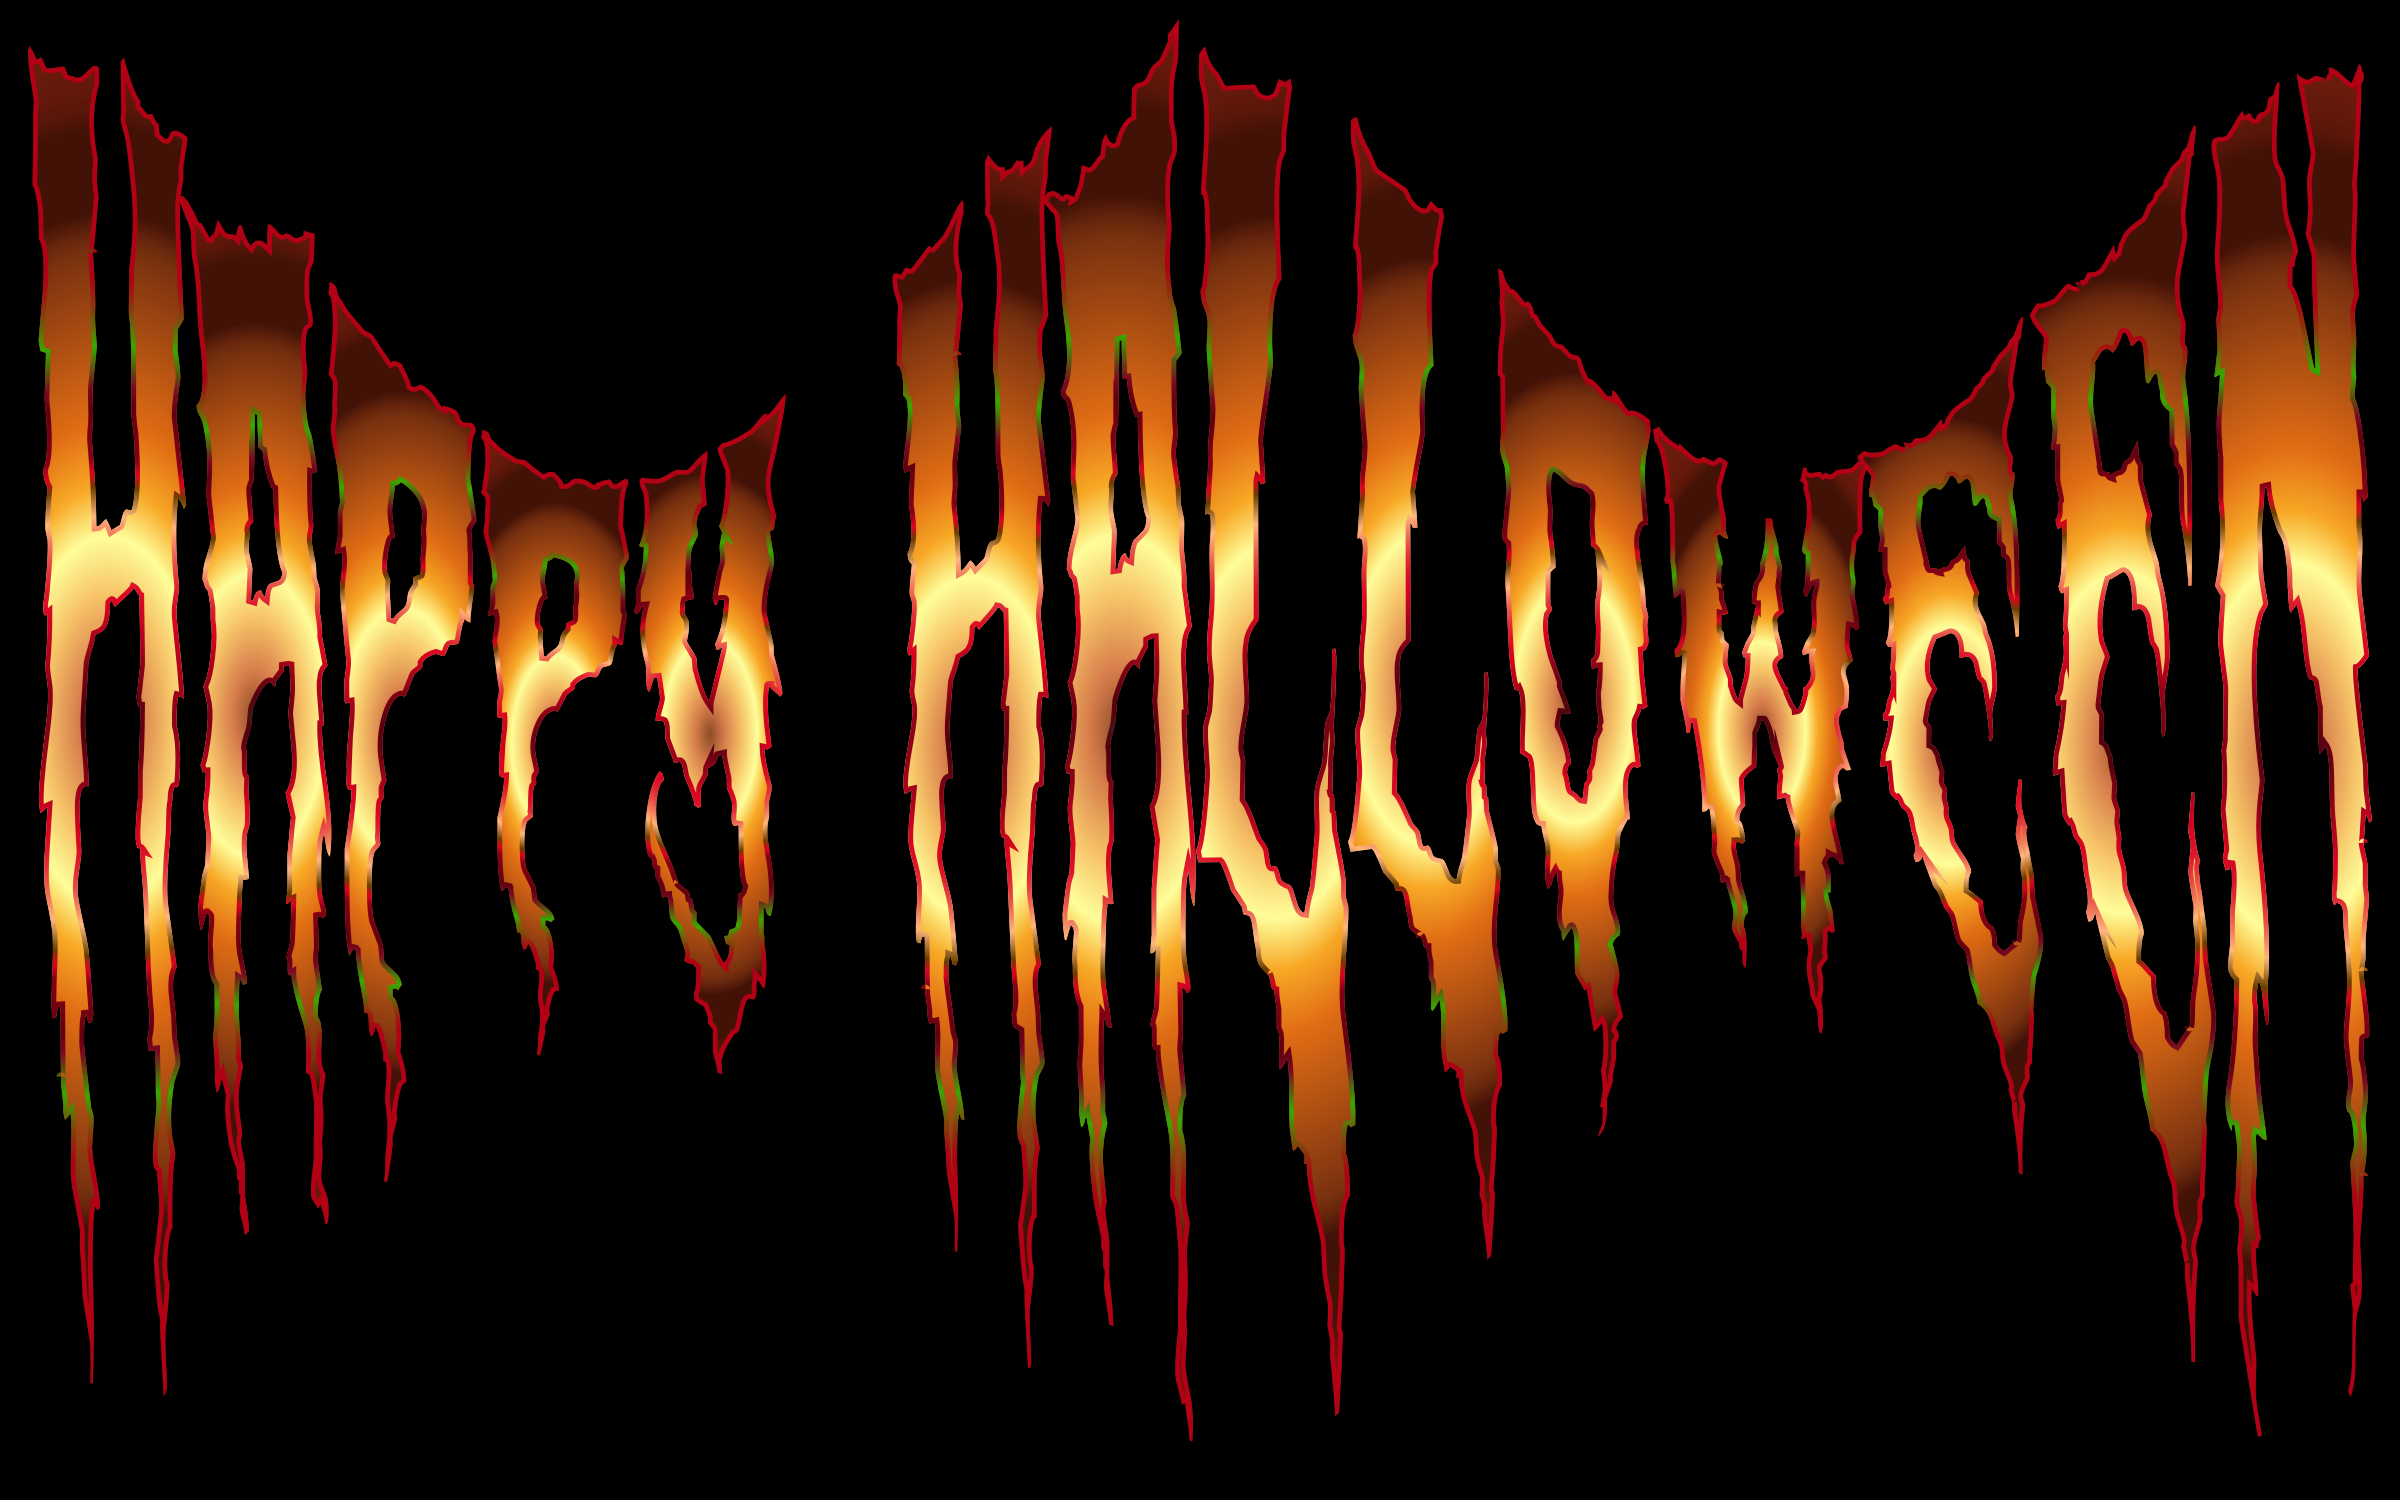 Happy Halloween Typography 2 by GDJ